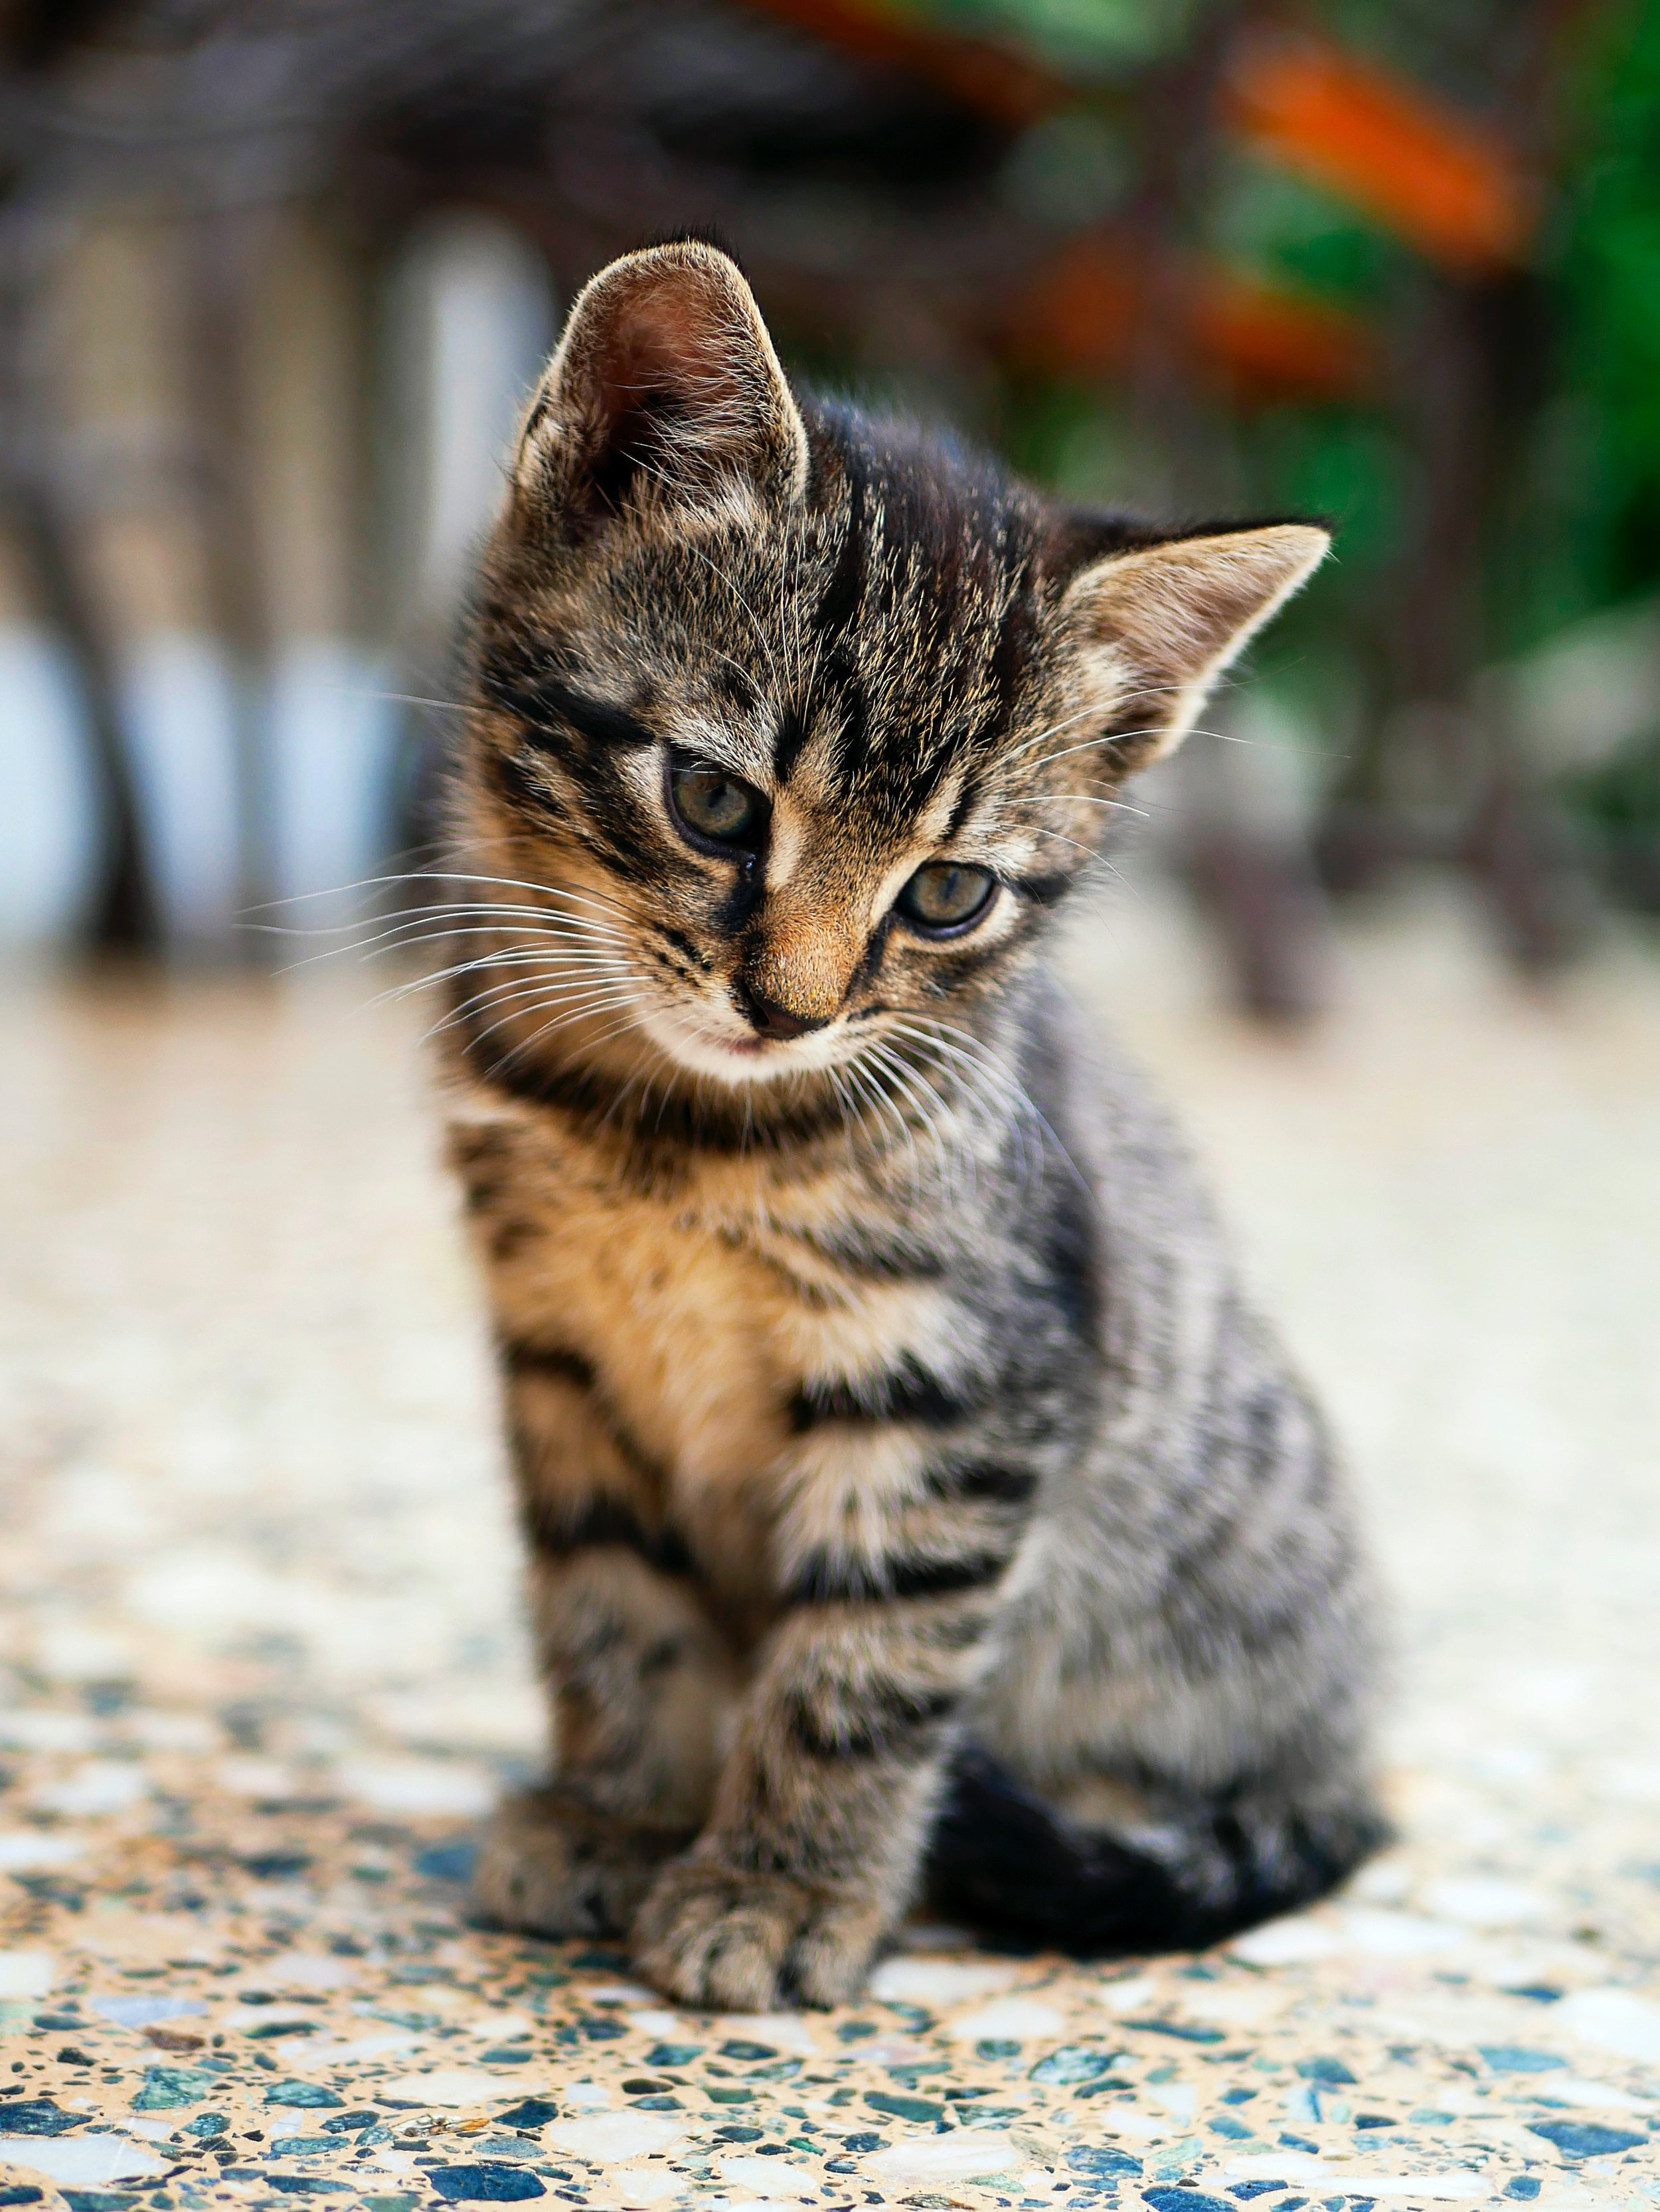 """Think about the approach you'd take with a little stray kitten. You wouldn't yell at it or throw a stick at it, if you wanted it to come to you. Nah, that's a surefire way of getting the kitten to head in the opposite direction. Nah, you speak sweetly to it. """"Here, kittie kittie. I've brought you some milk. Please let me hold you and take care of you."""" You coax it. Pet it. Love it. — LaTisha Cotto"""